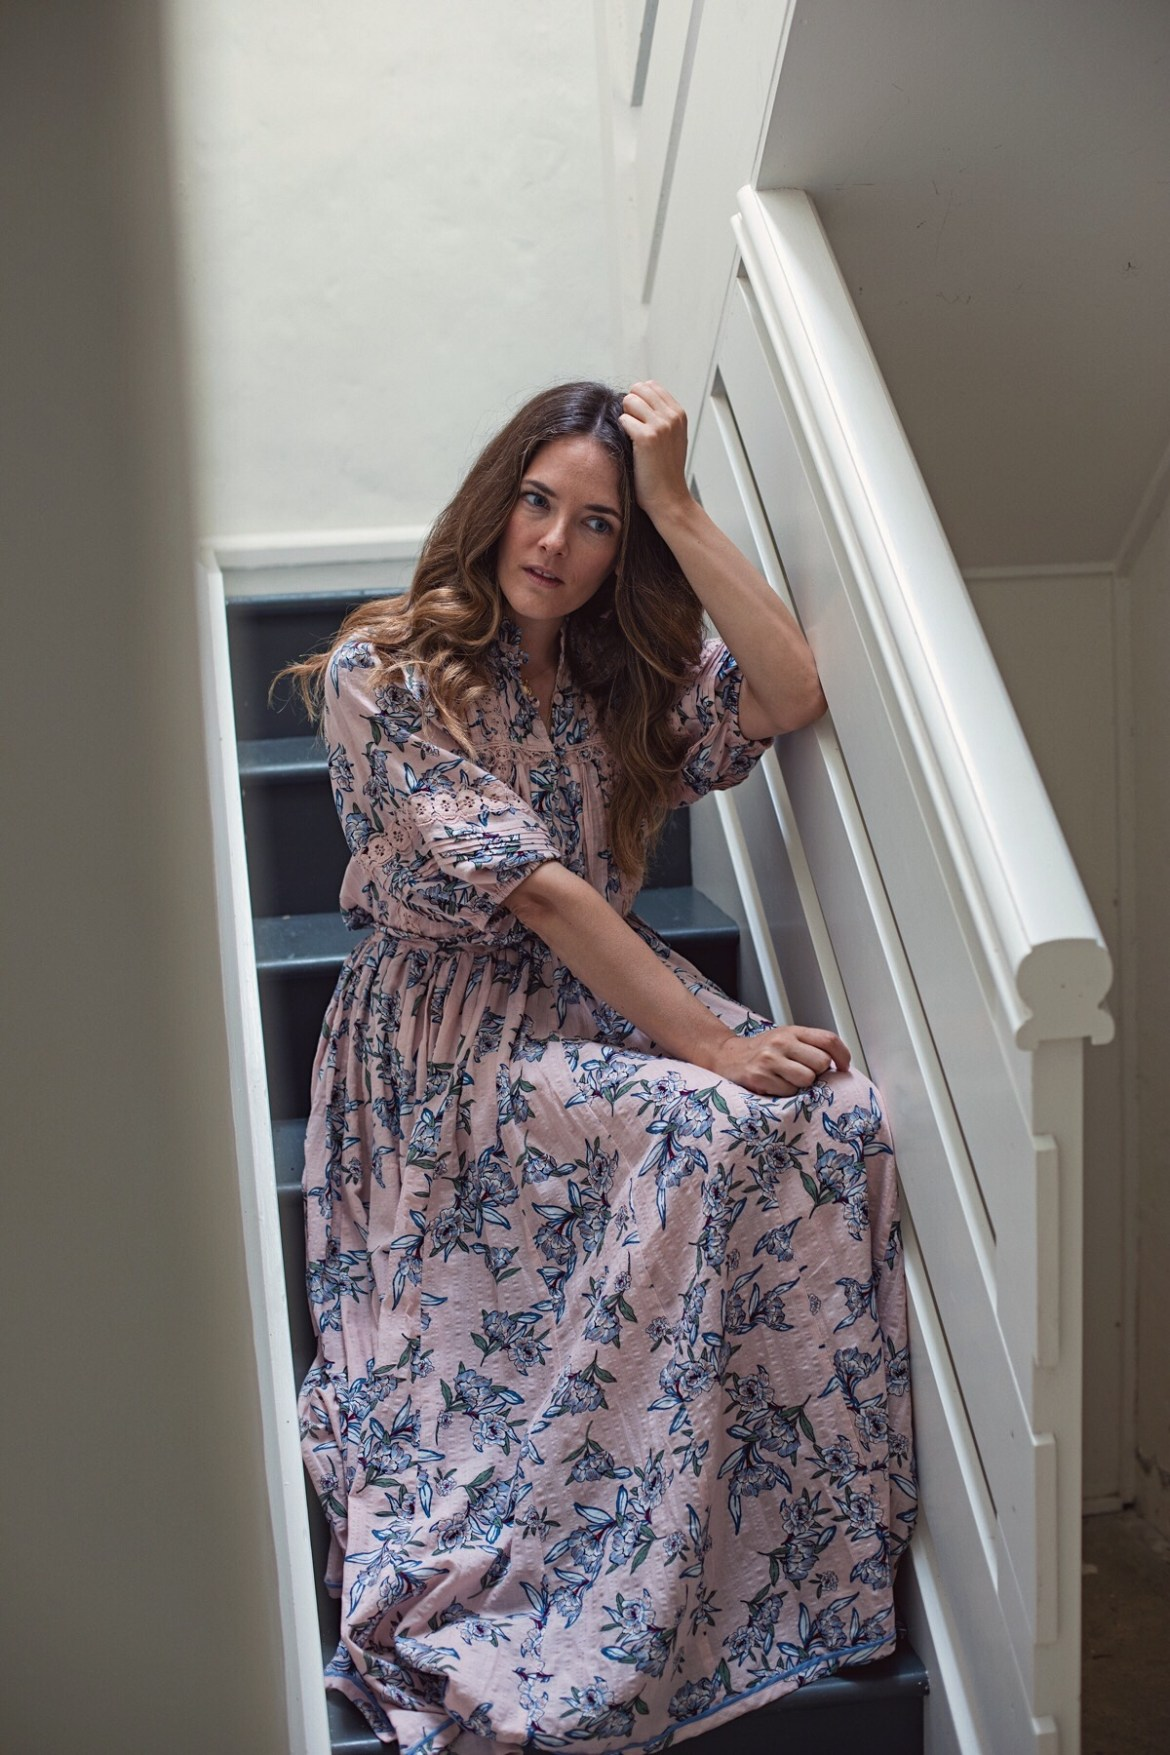 Bohemian Traders daydreamer print top and skirt worn by Australian fashion blogger Jenelle Witty from Inspiring Wit